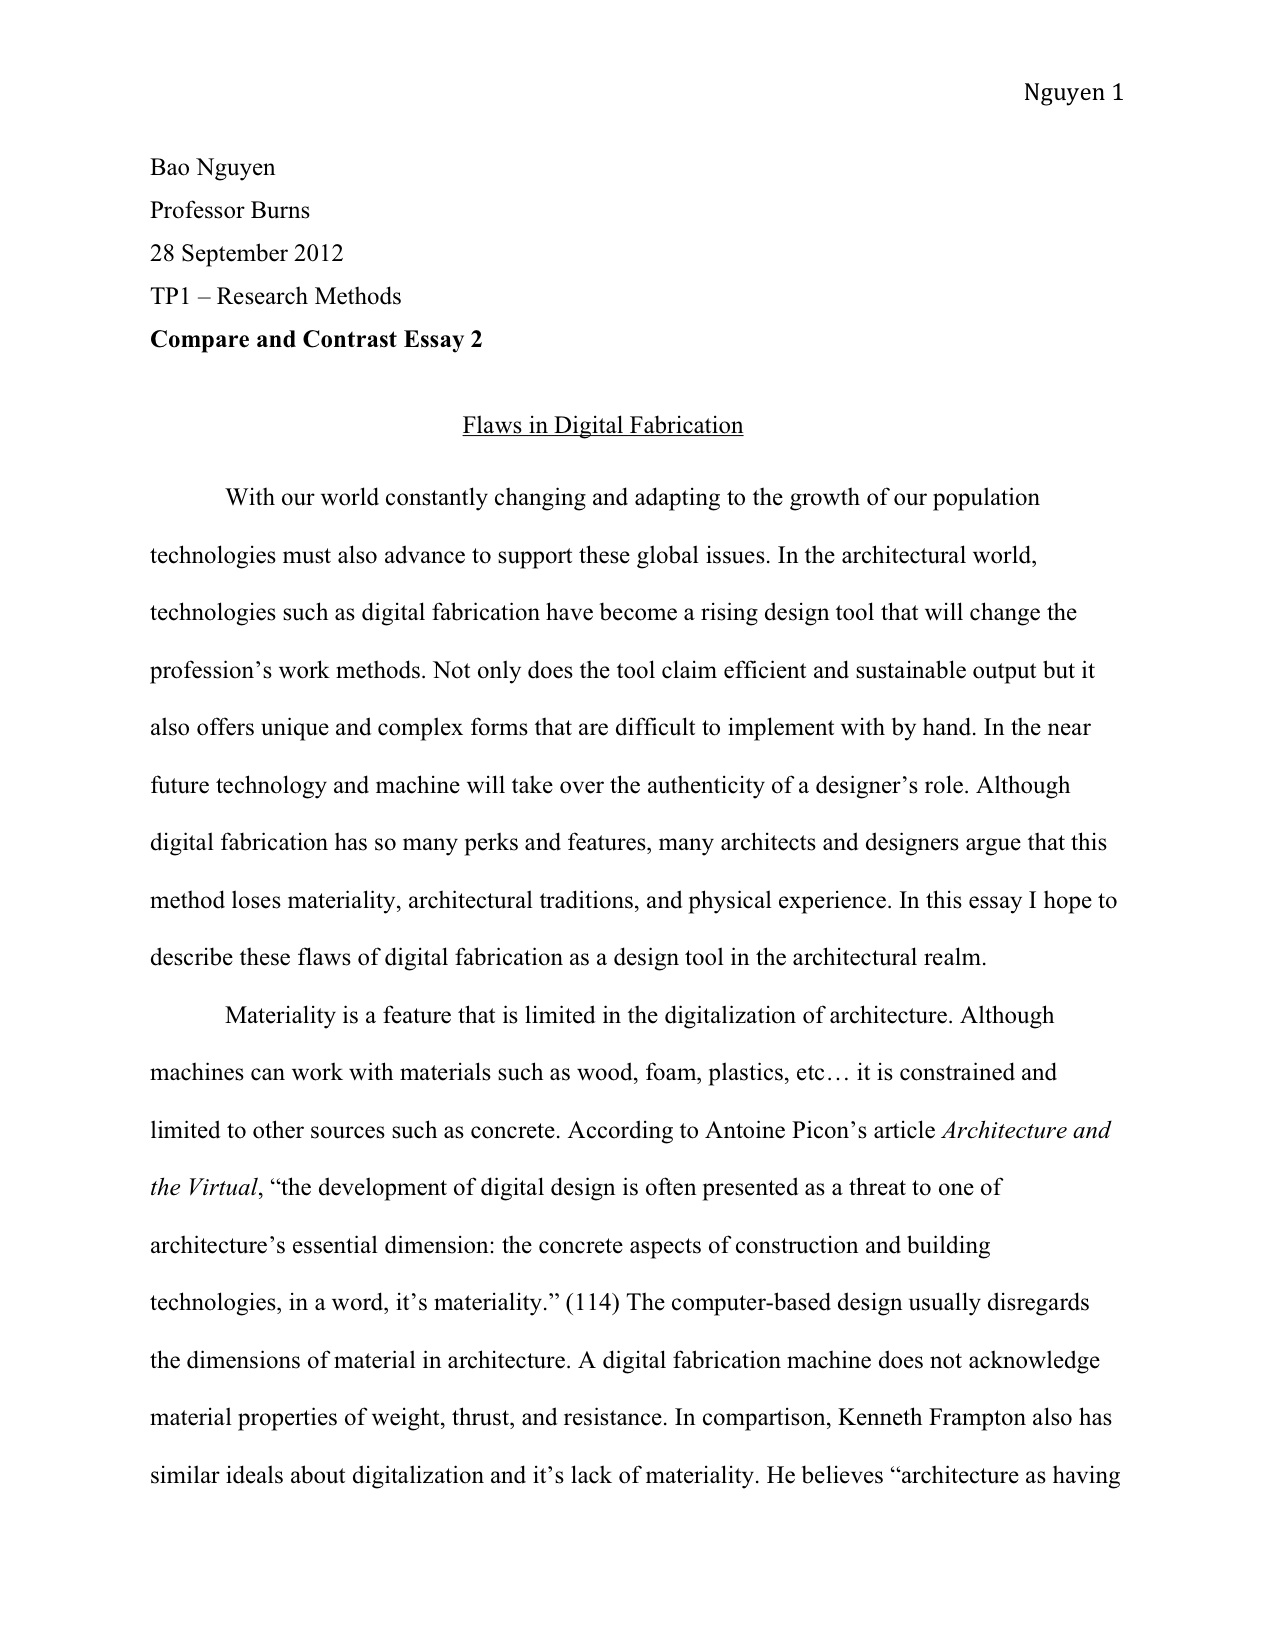 005 Essay Example With Thesis Tp1 3 Breathtaking Personal Narrative Statement And Topic Sentence Format Full